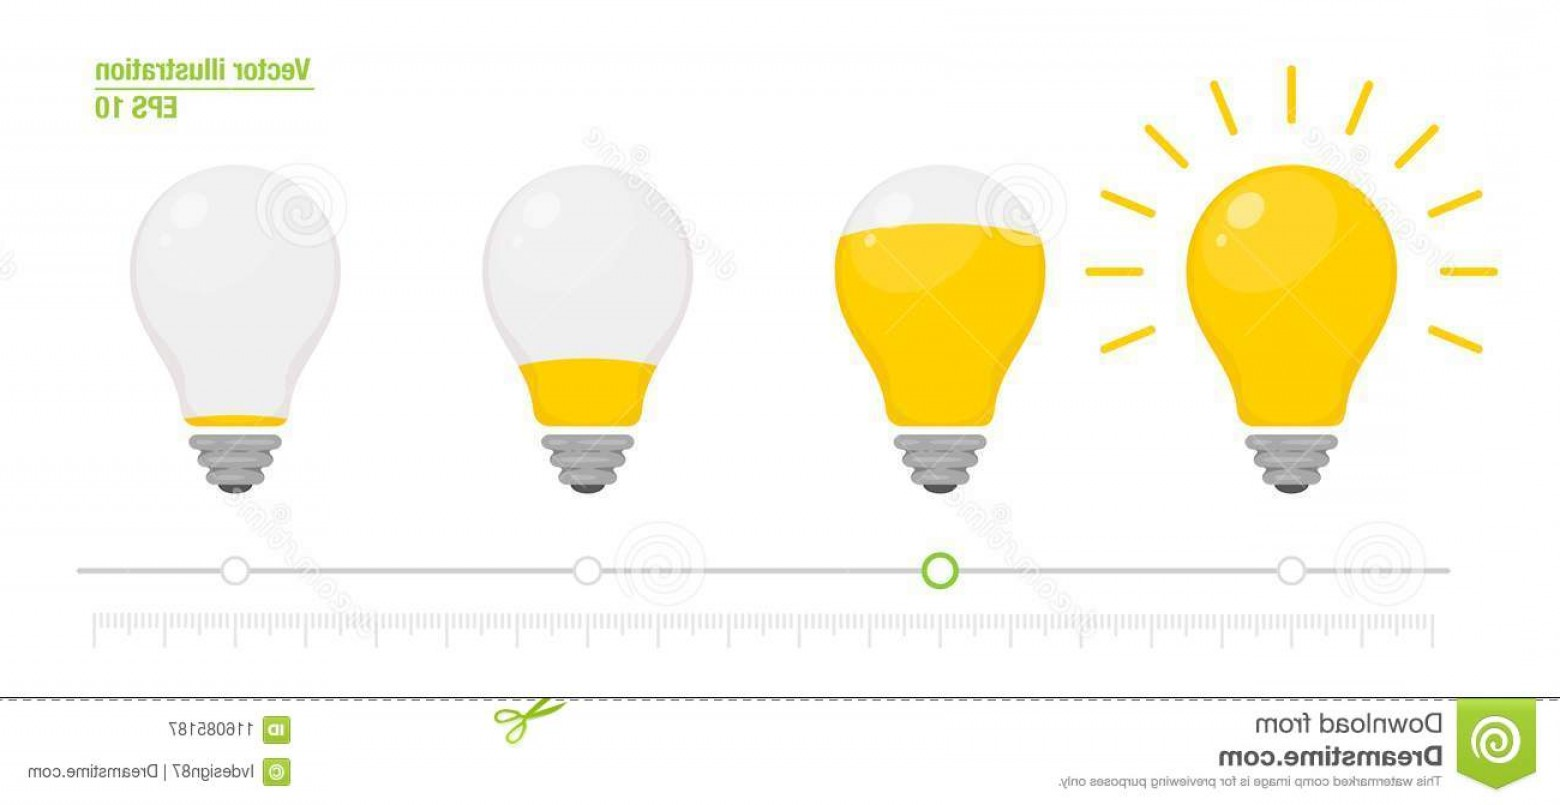 Vector Battery Replacement Lanterns: Light Power Indicator Power Switch Energy Charge Level Full Low Yellow Glowing Light Bulb Vector Illustration Light Power Image